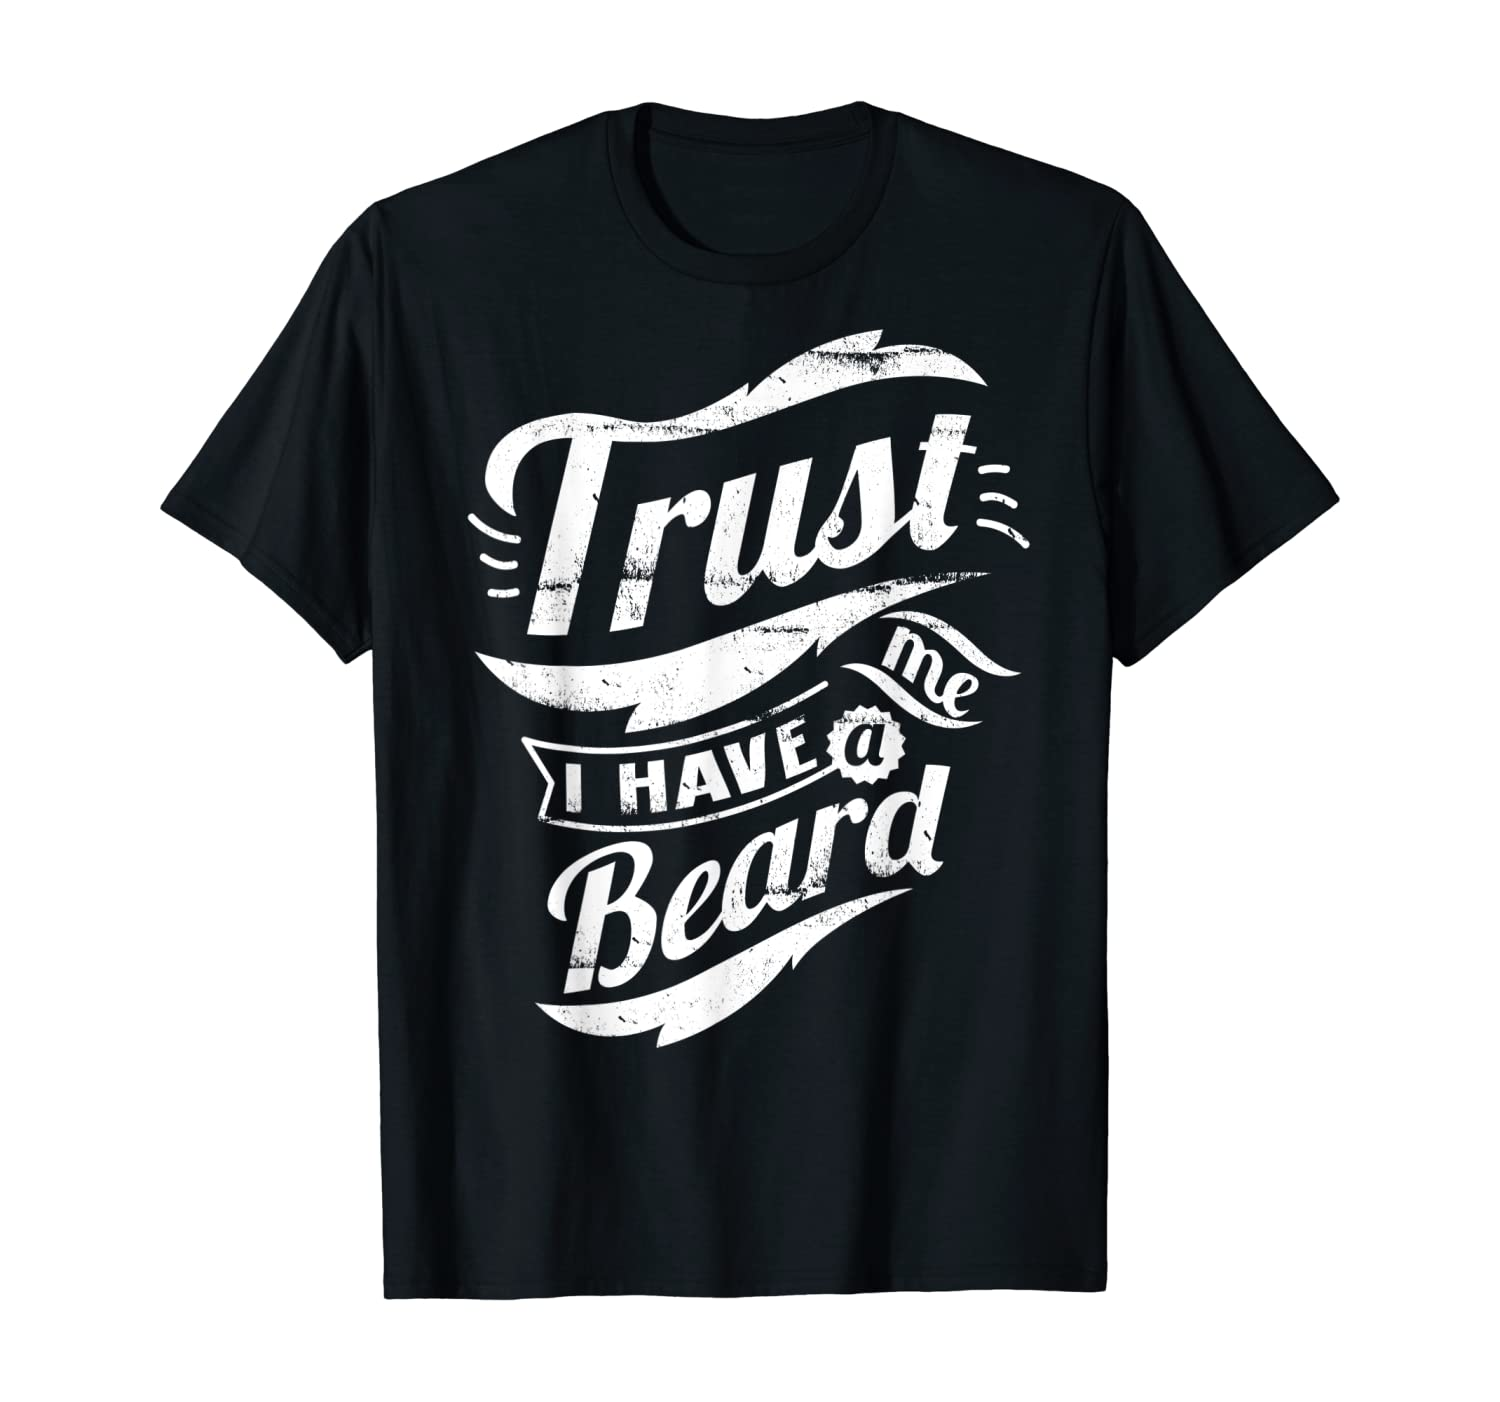 I HAVE A BEARD Funny T-Shirt Novelty Adult Graphic Tee Humor Mens TRUST ME